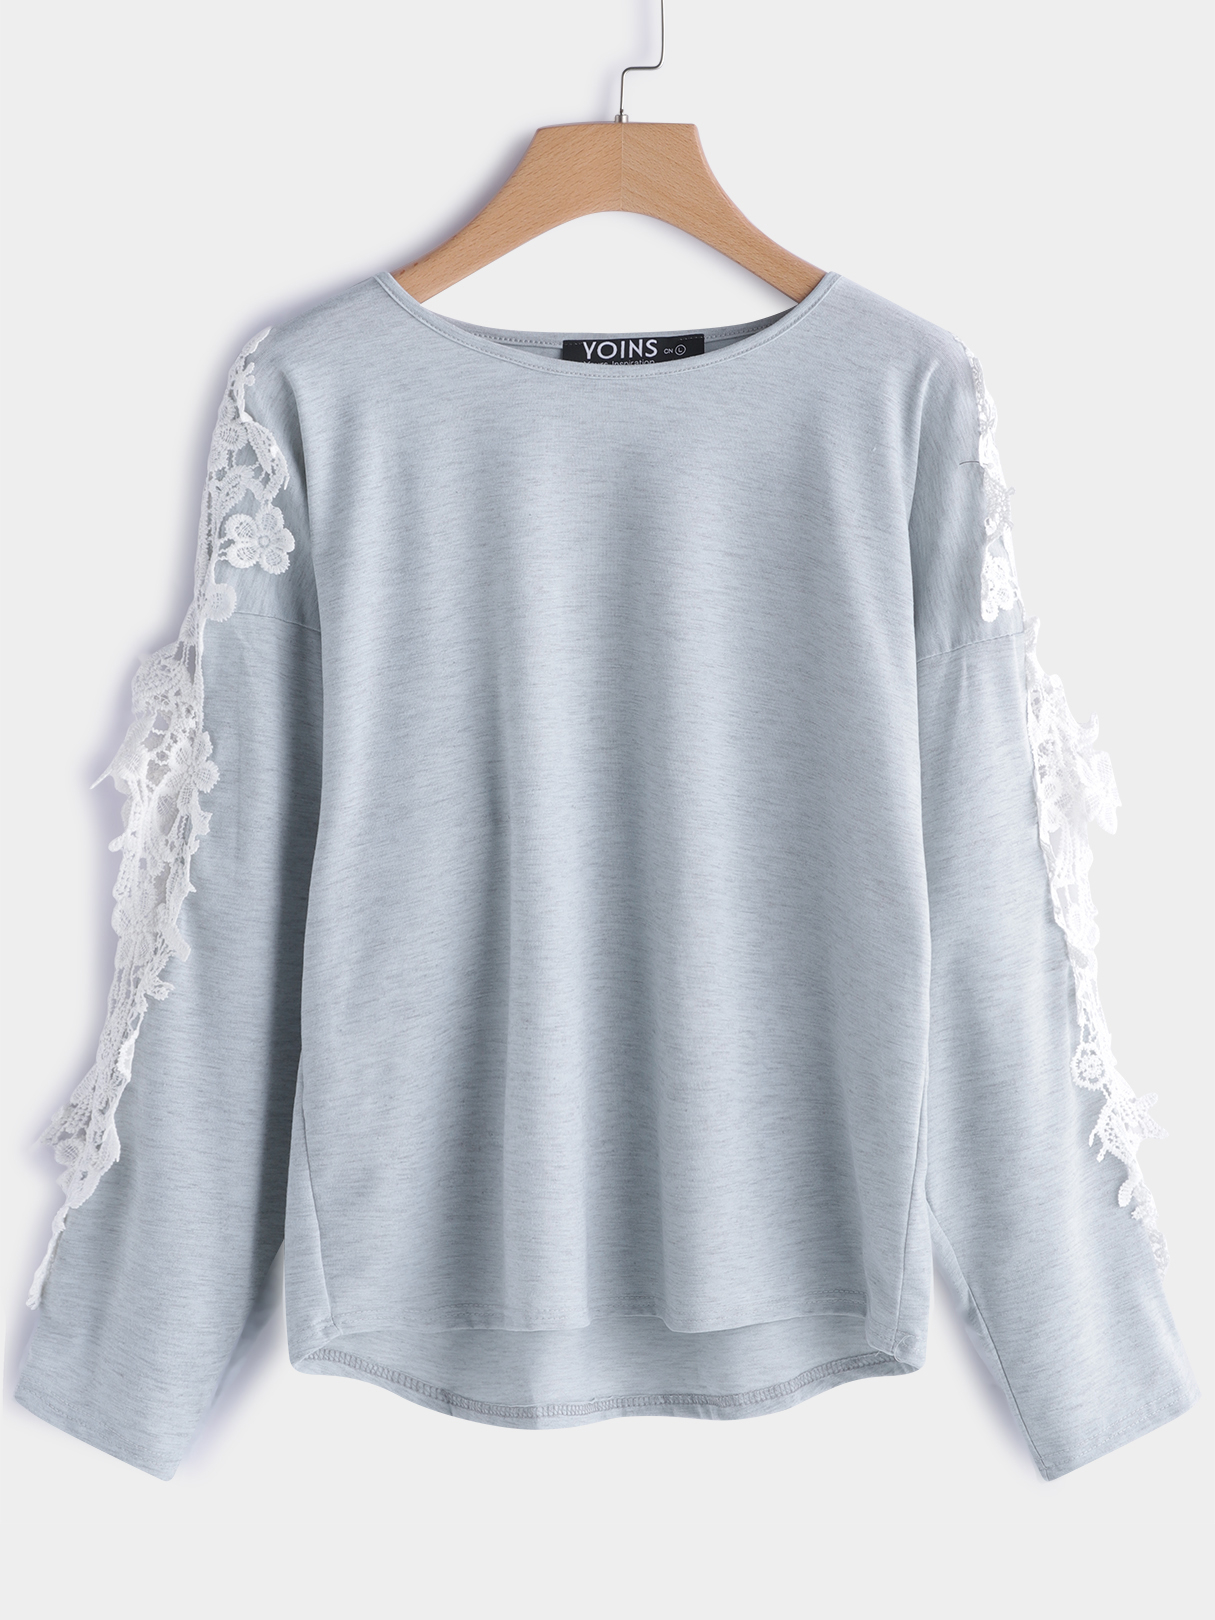 Grey Cut Out Plain Round Neck Lace Details Long Sleeves T-shirt grey pocket front round neck long sleeves t shirt